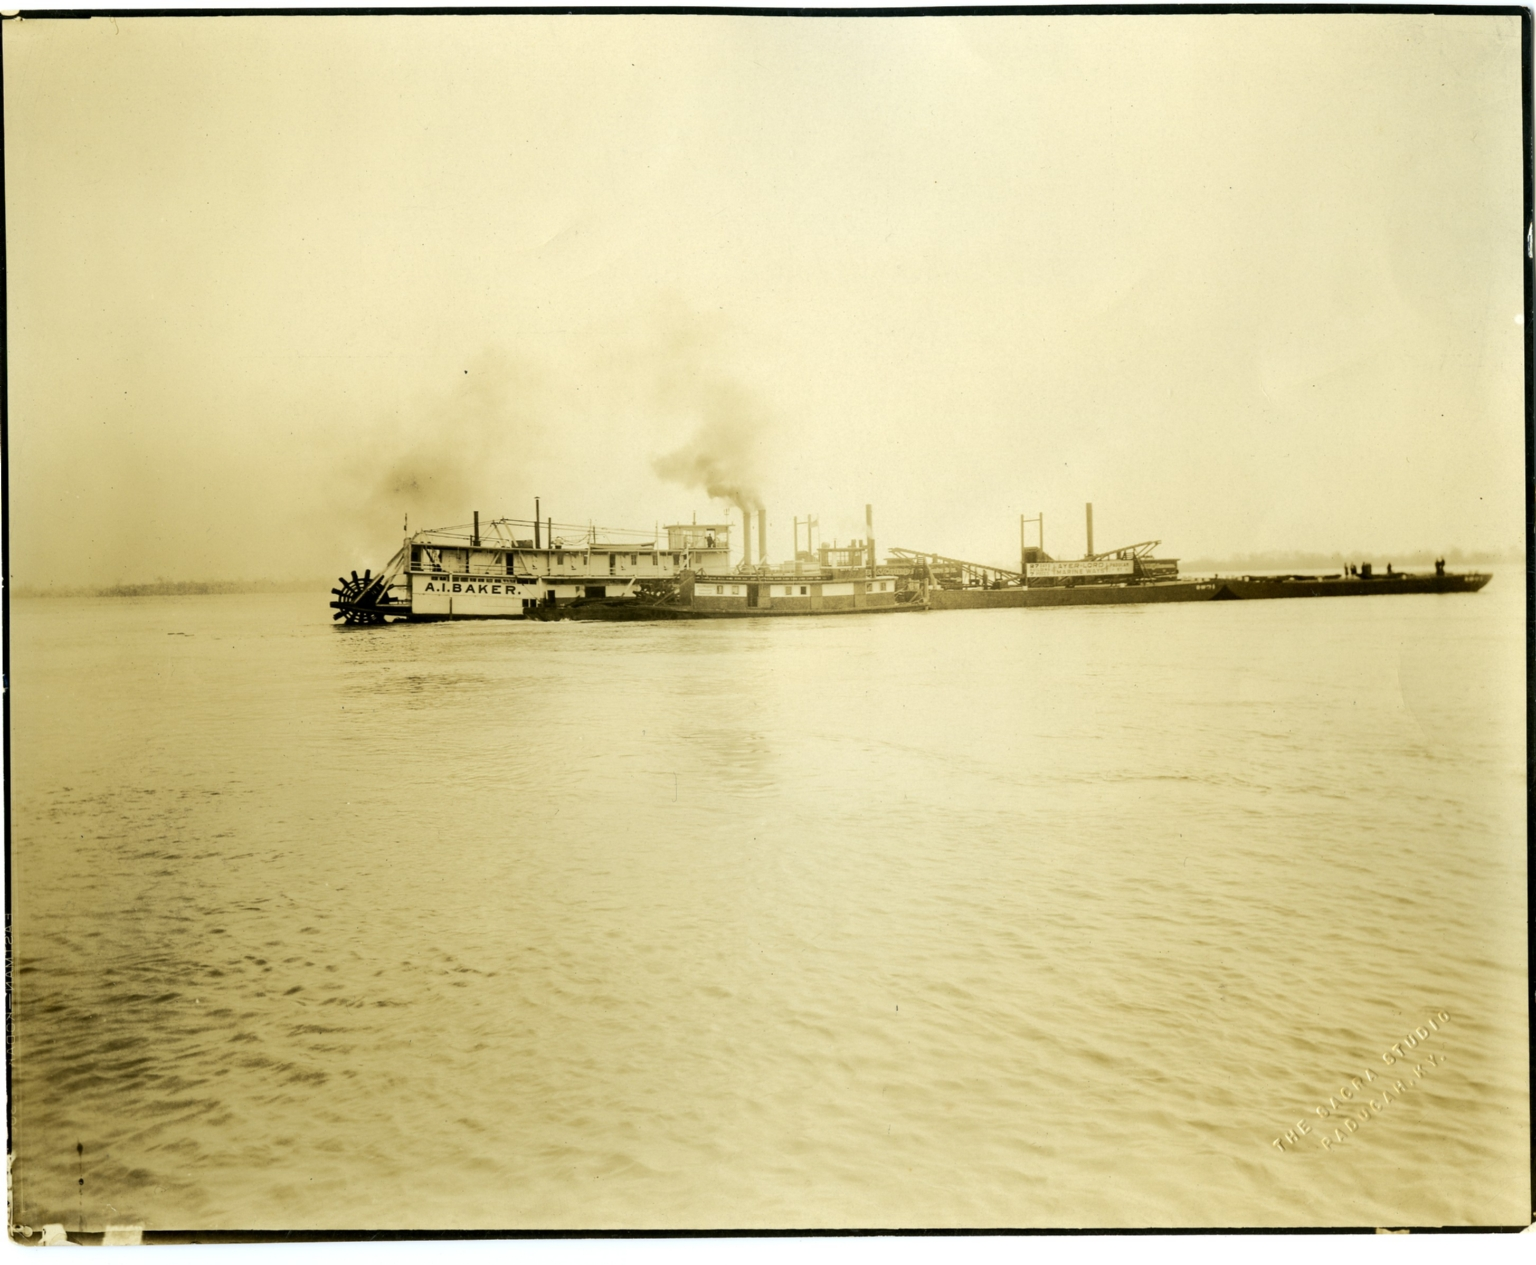 Ayer and Lord Tie Company Boats